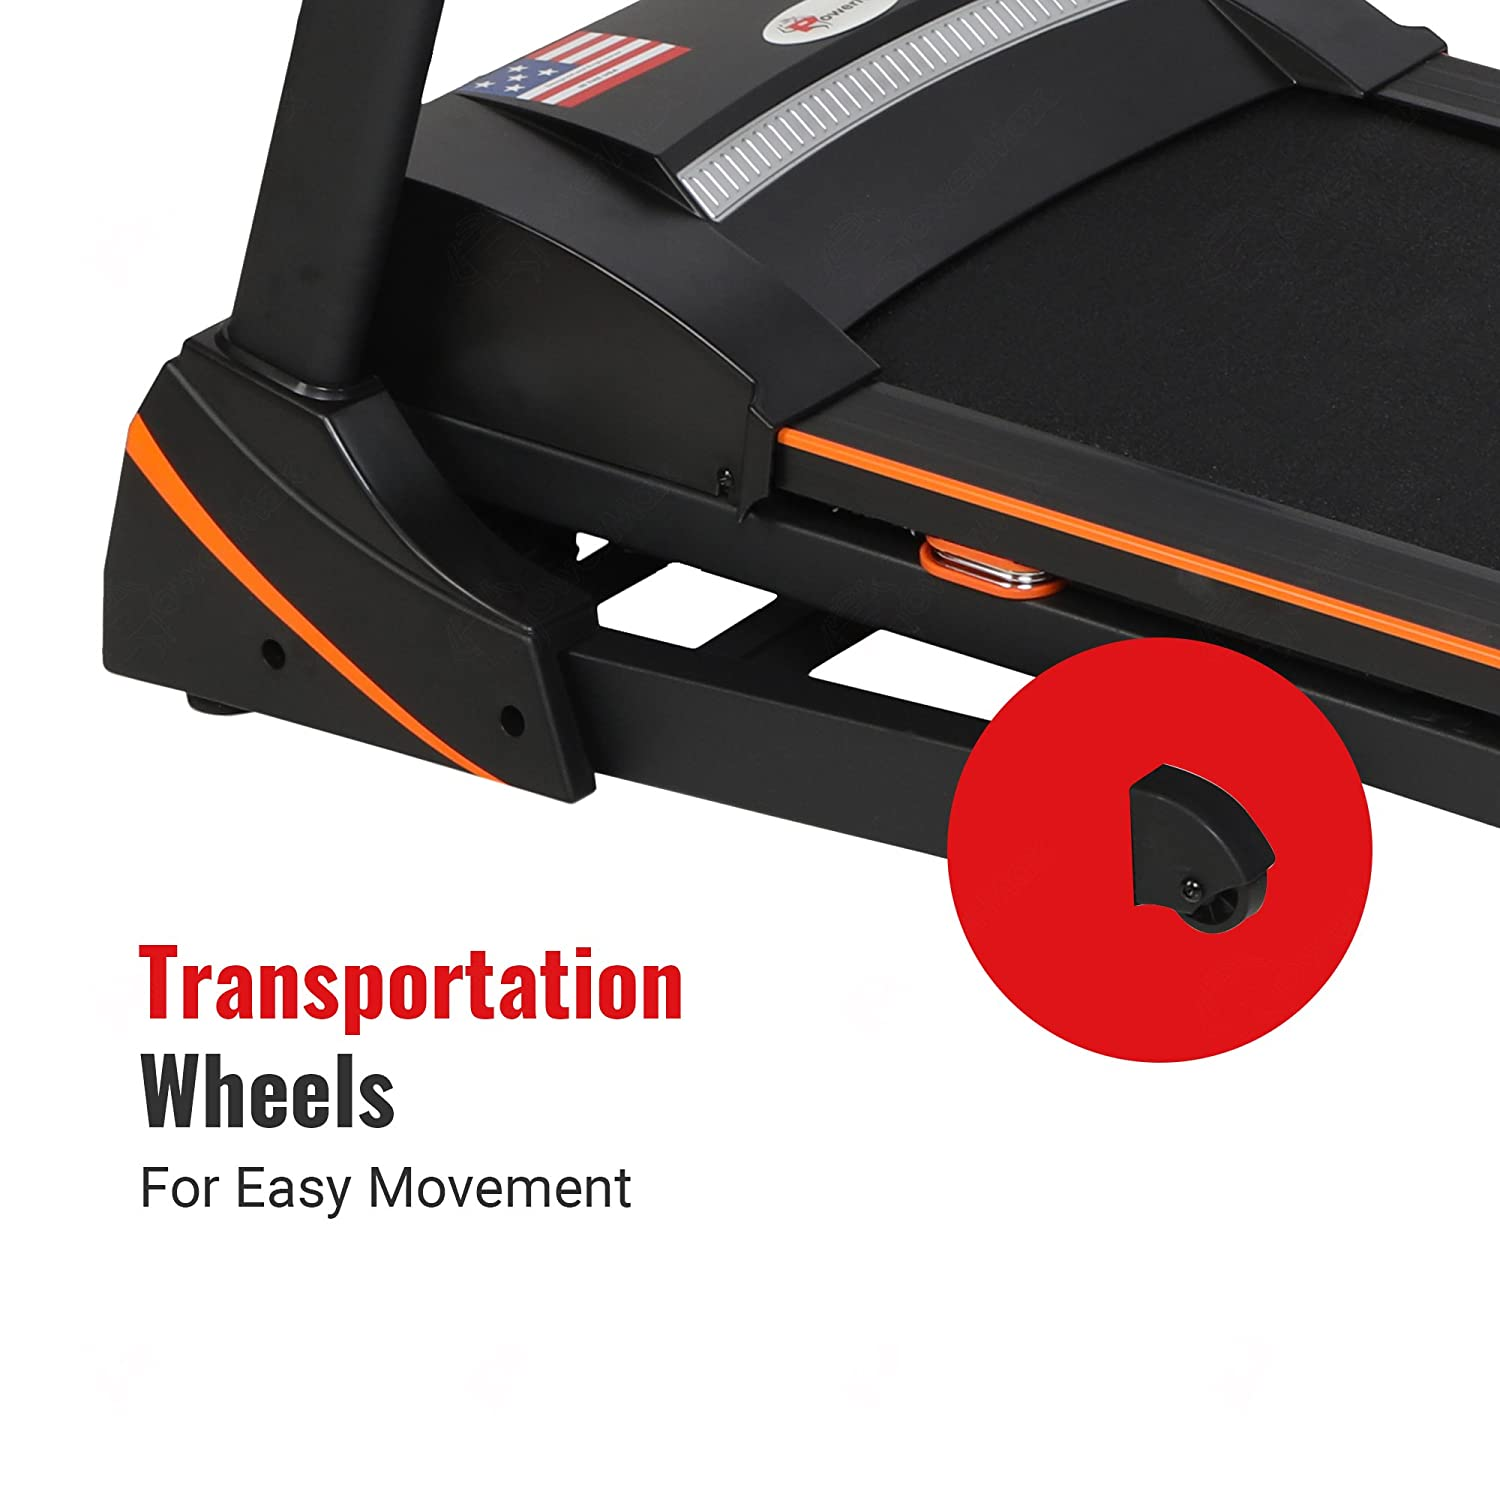 TDM-100S With Jumping wheels and Semi-Auto Lubrication